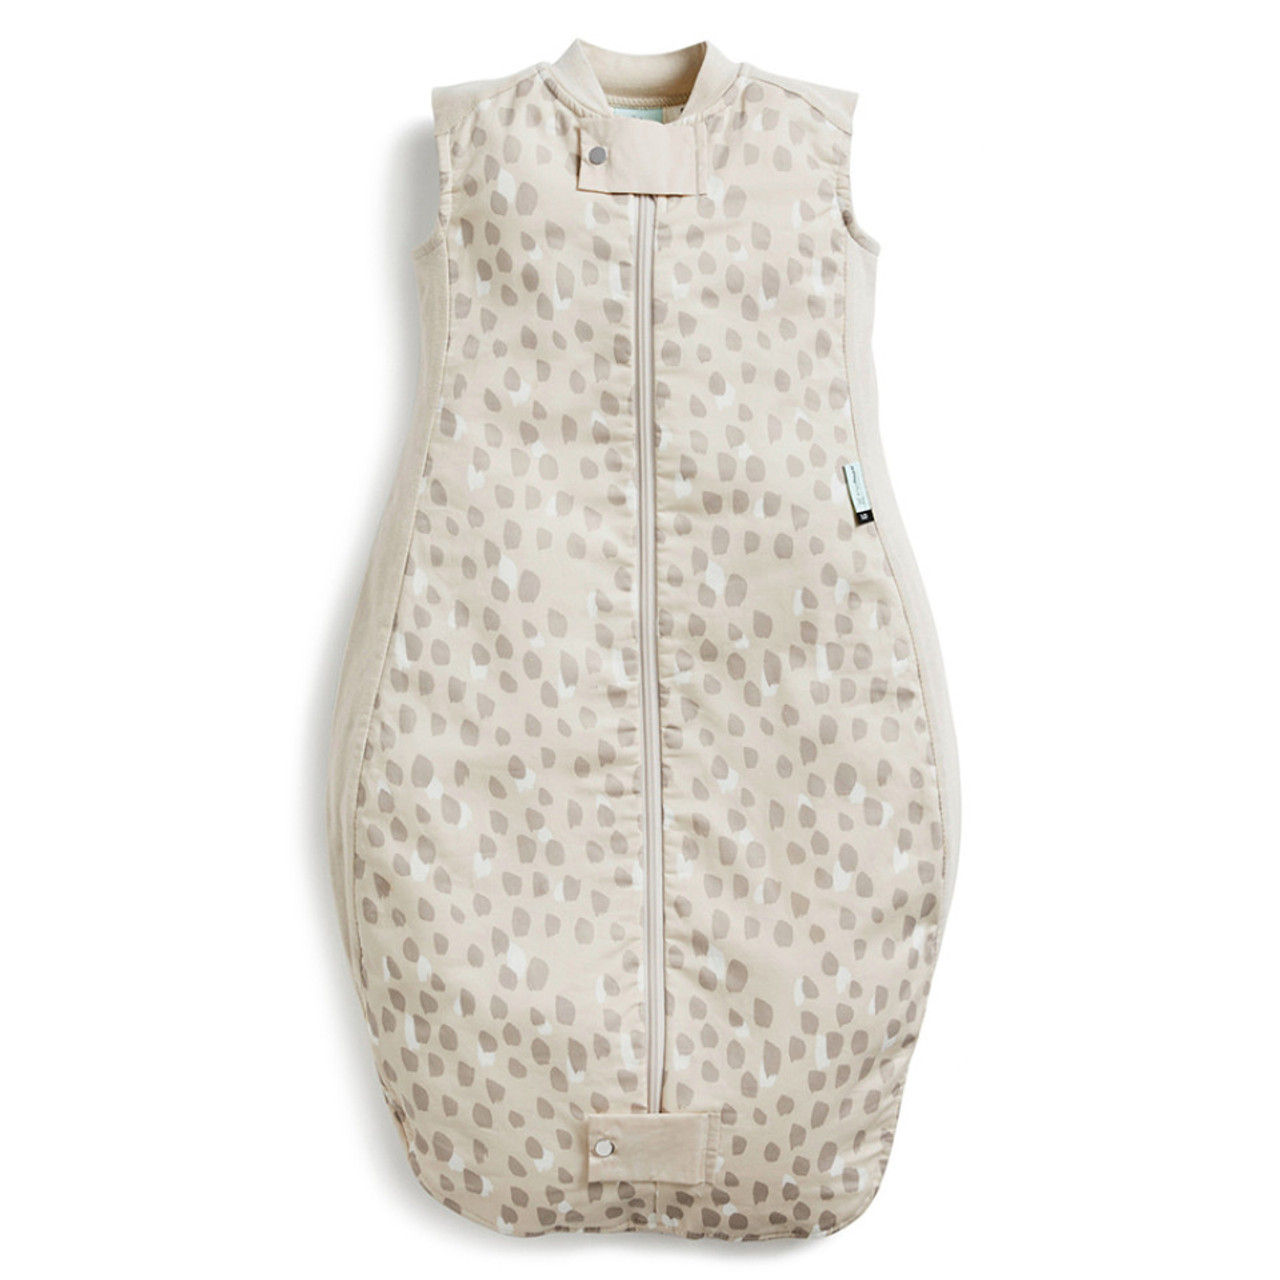 ergoPouch Sheeting Sleeping Bag 1.0 tog 2-12 Months - FAWN